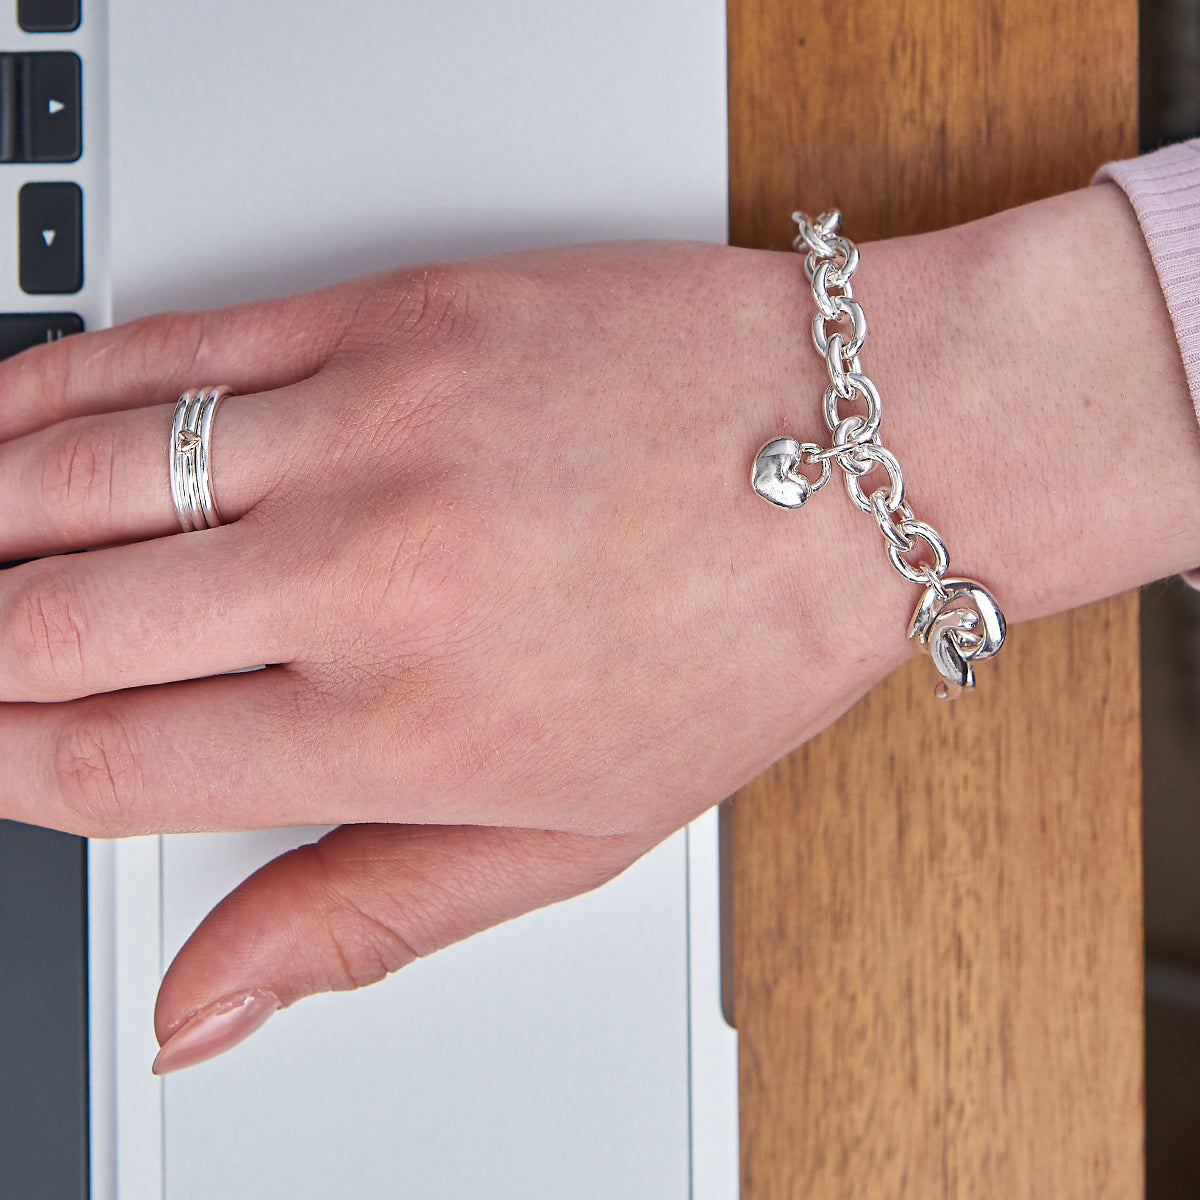 Traditional style designer silver charm bracelet with T-bar clasp Scarlett Jewellery